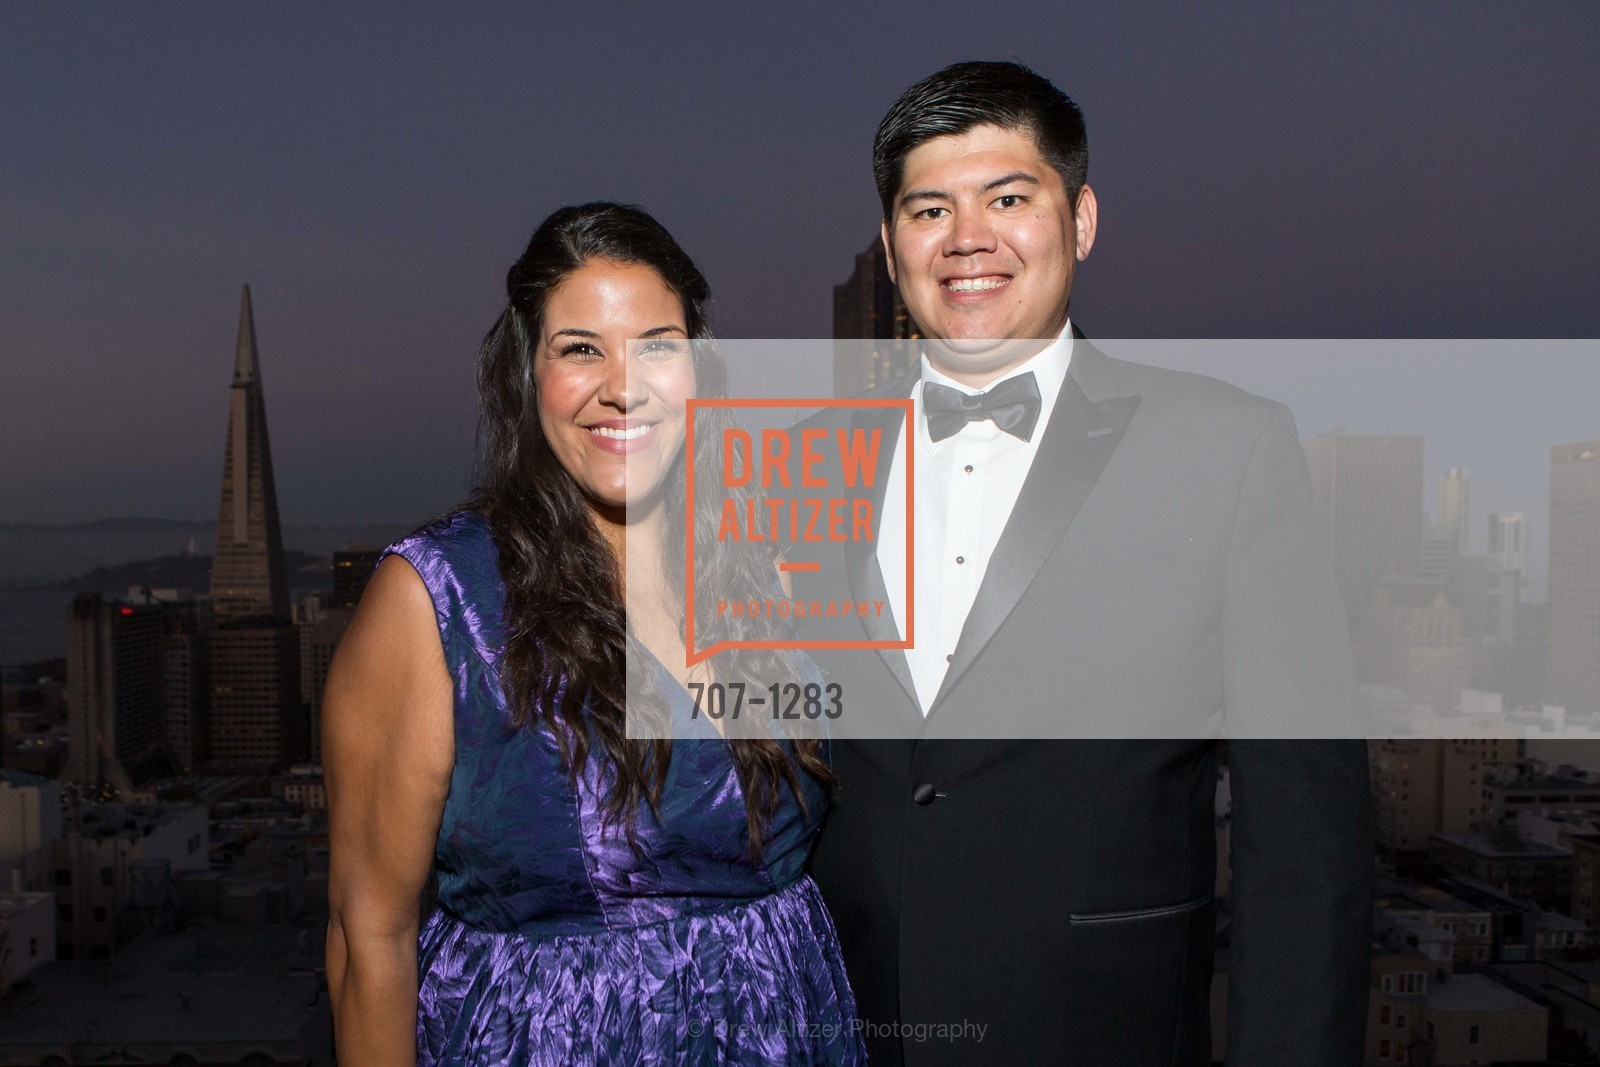 Top Picks, Spinsters of San Francisco Annual Ball 2016, June 25th, 2016, Photo